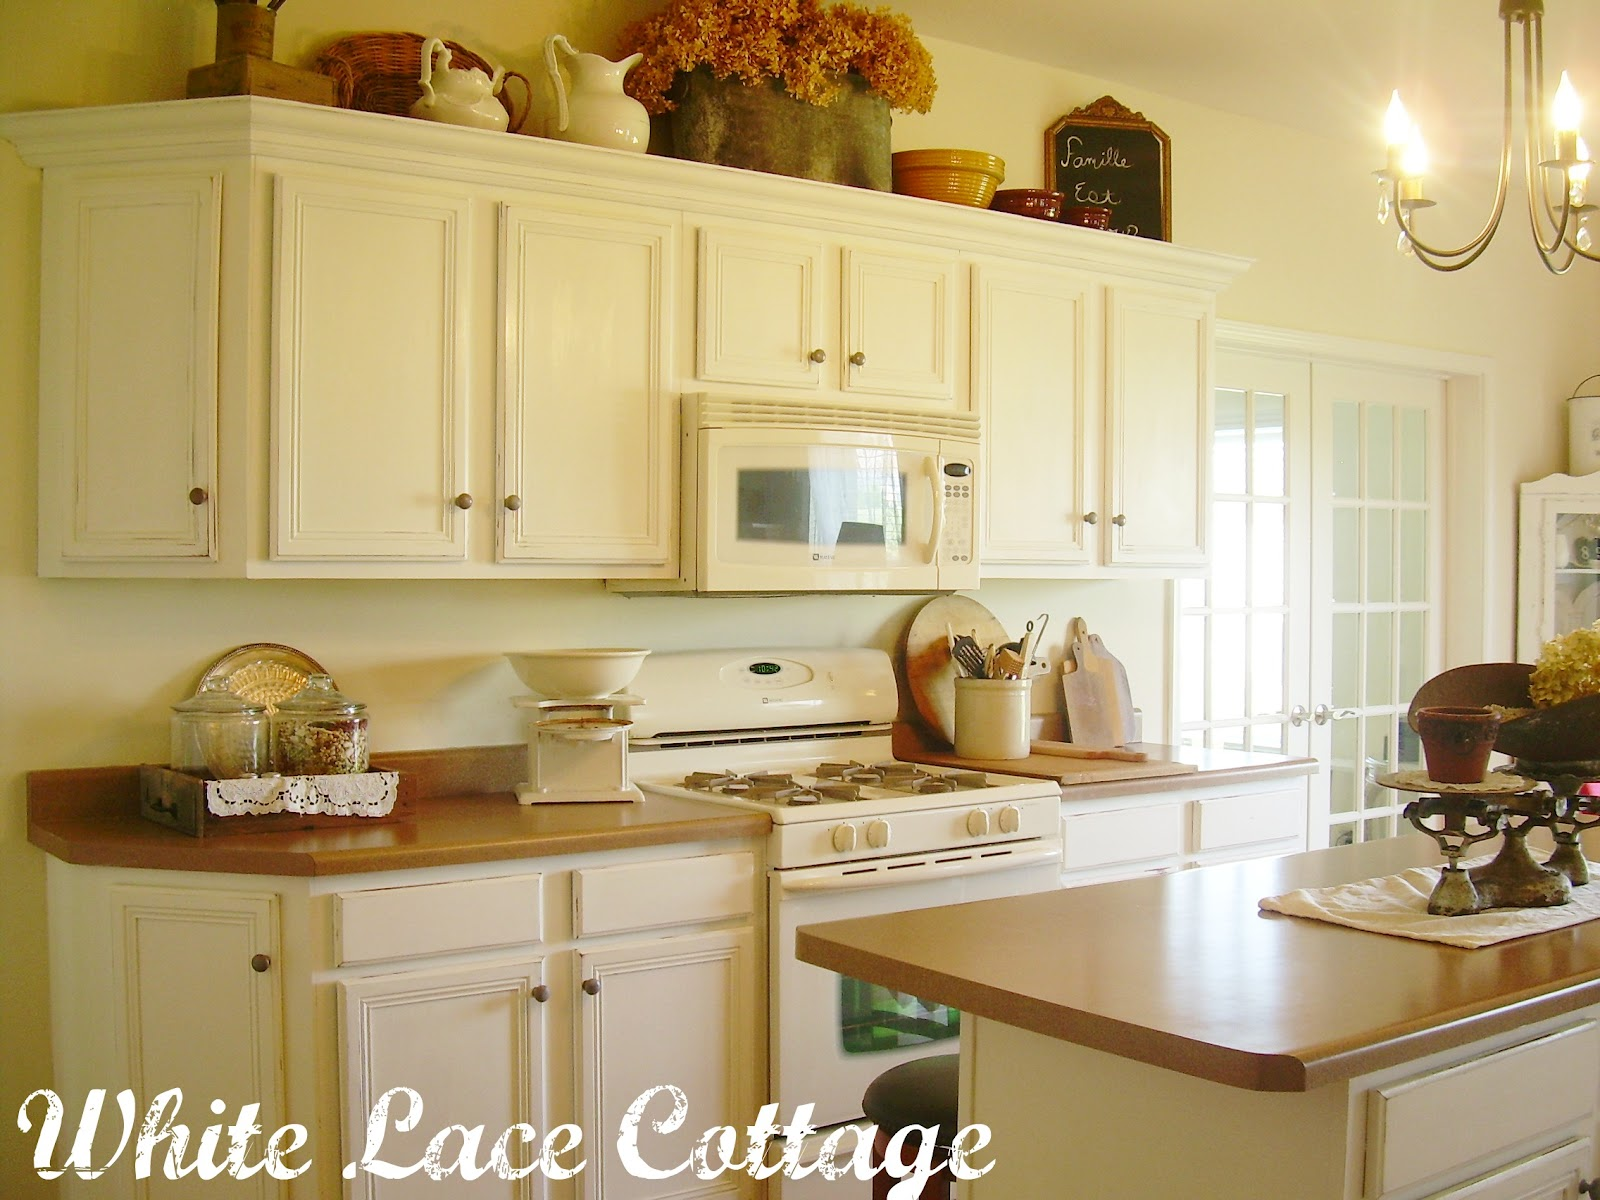 Kitchen Reveal Day! - White Lace Cottage